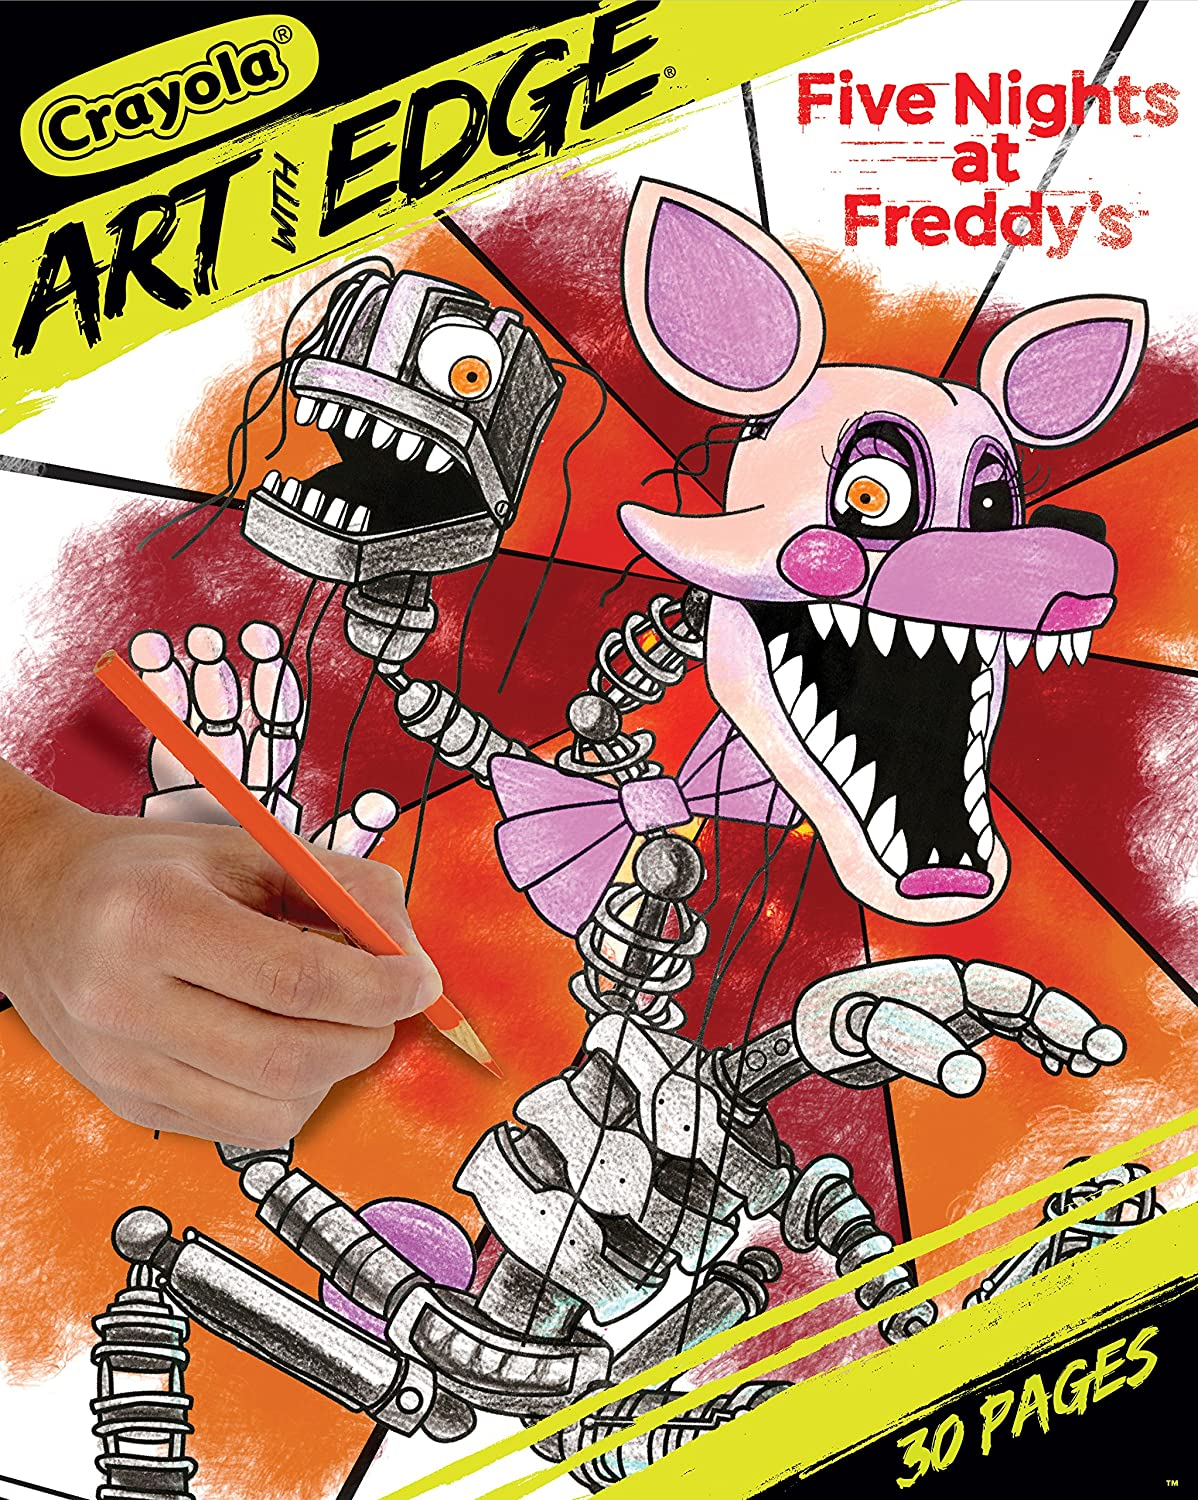 Crayola Five Nights at Freddys Coloring Pages Adult Coloring 30 Count Binney /& Smith 04-0396